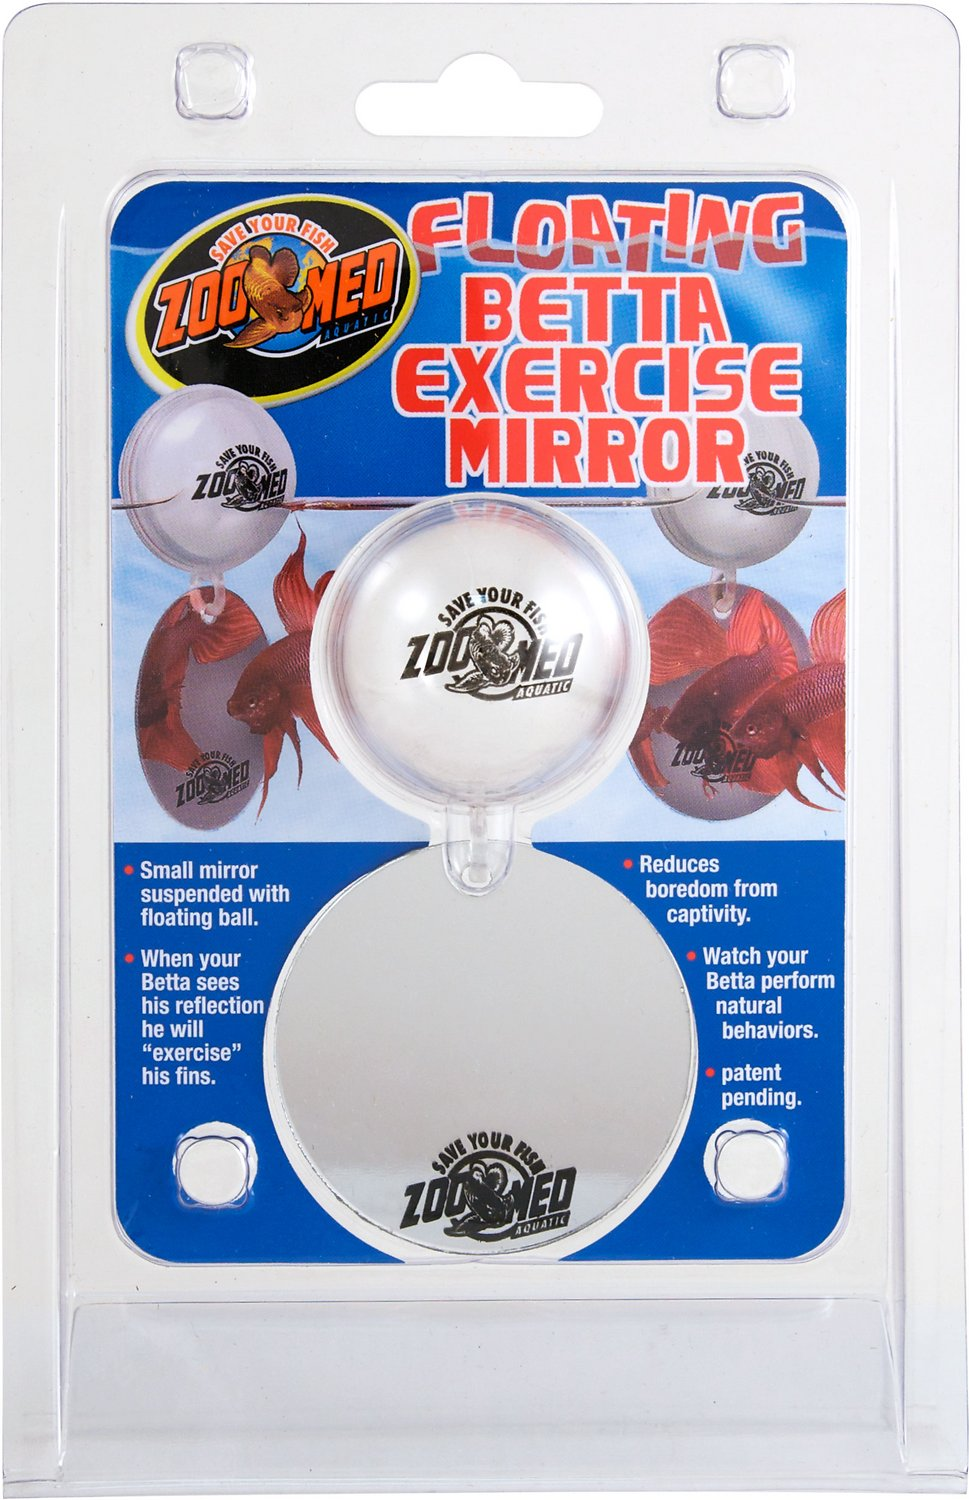 3. Zoo Med Floating Betta Exercise Mirror